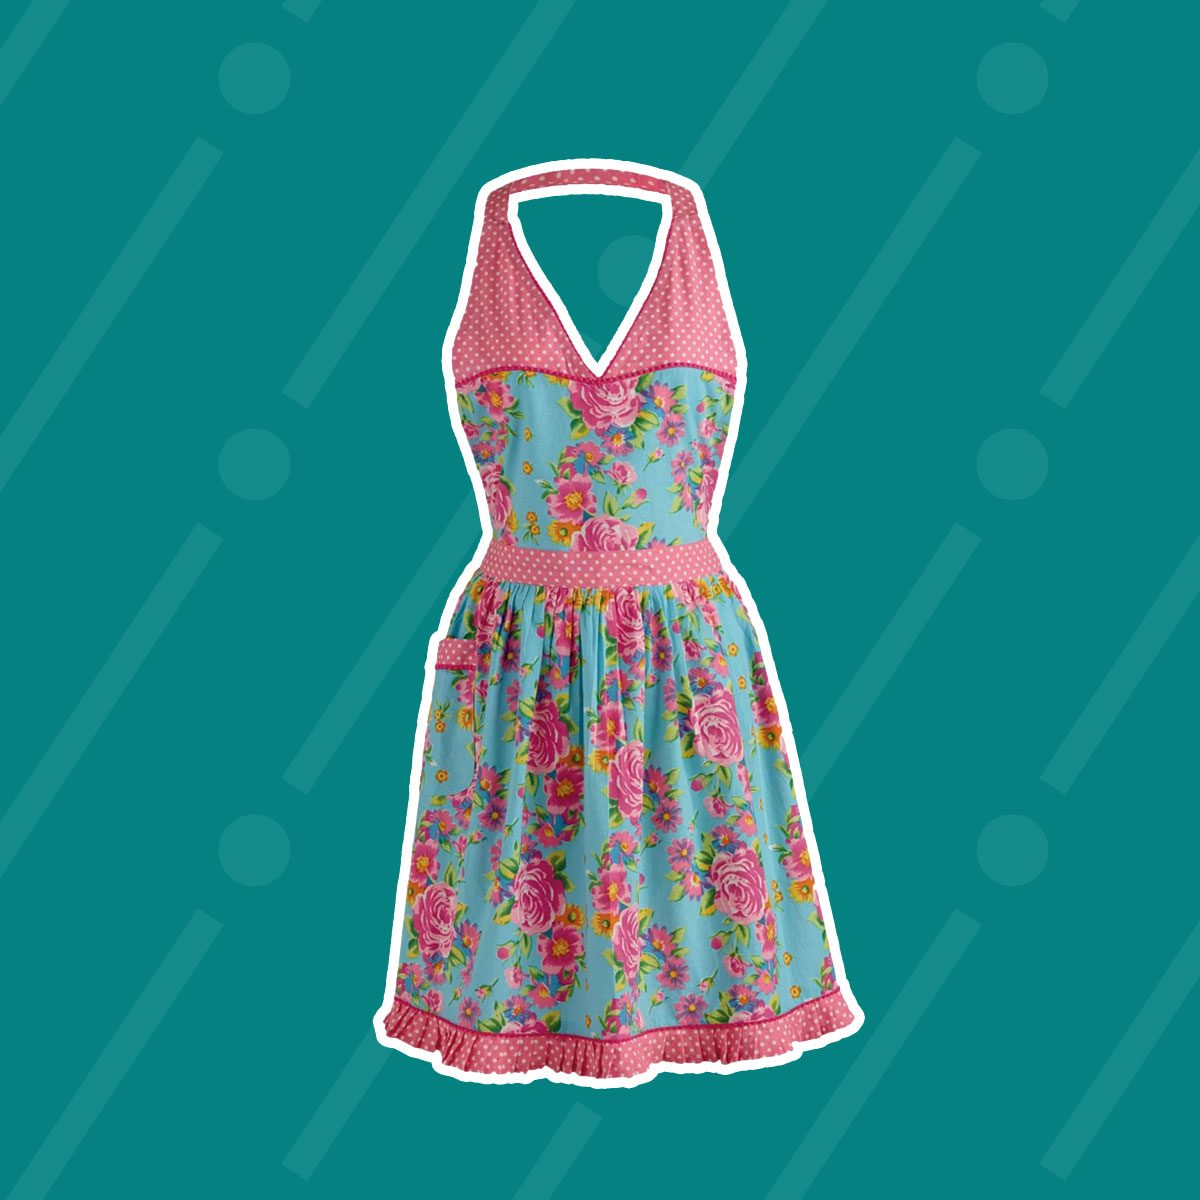 Floral And Pink Polka Dot Vintage Apron